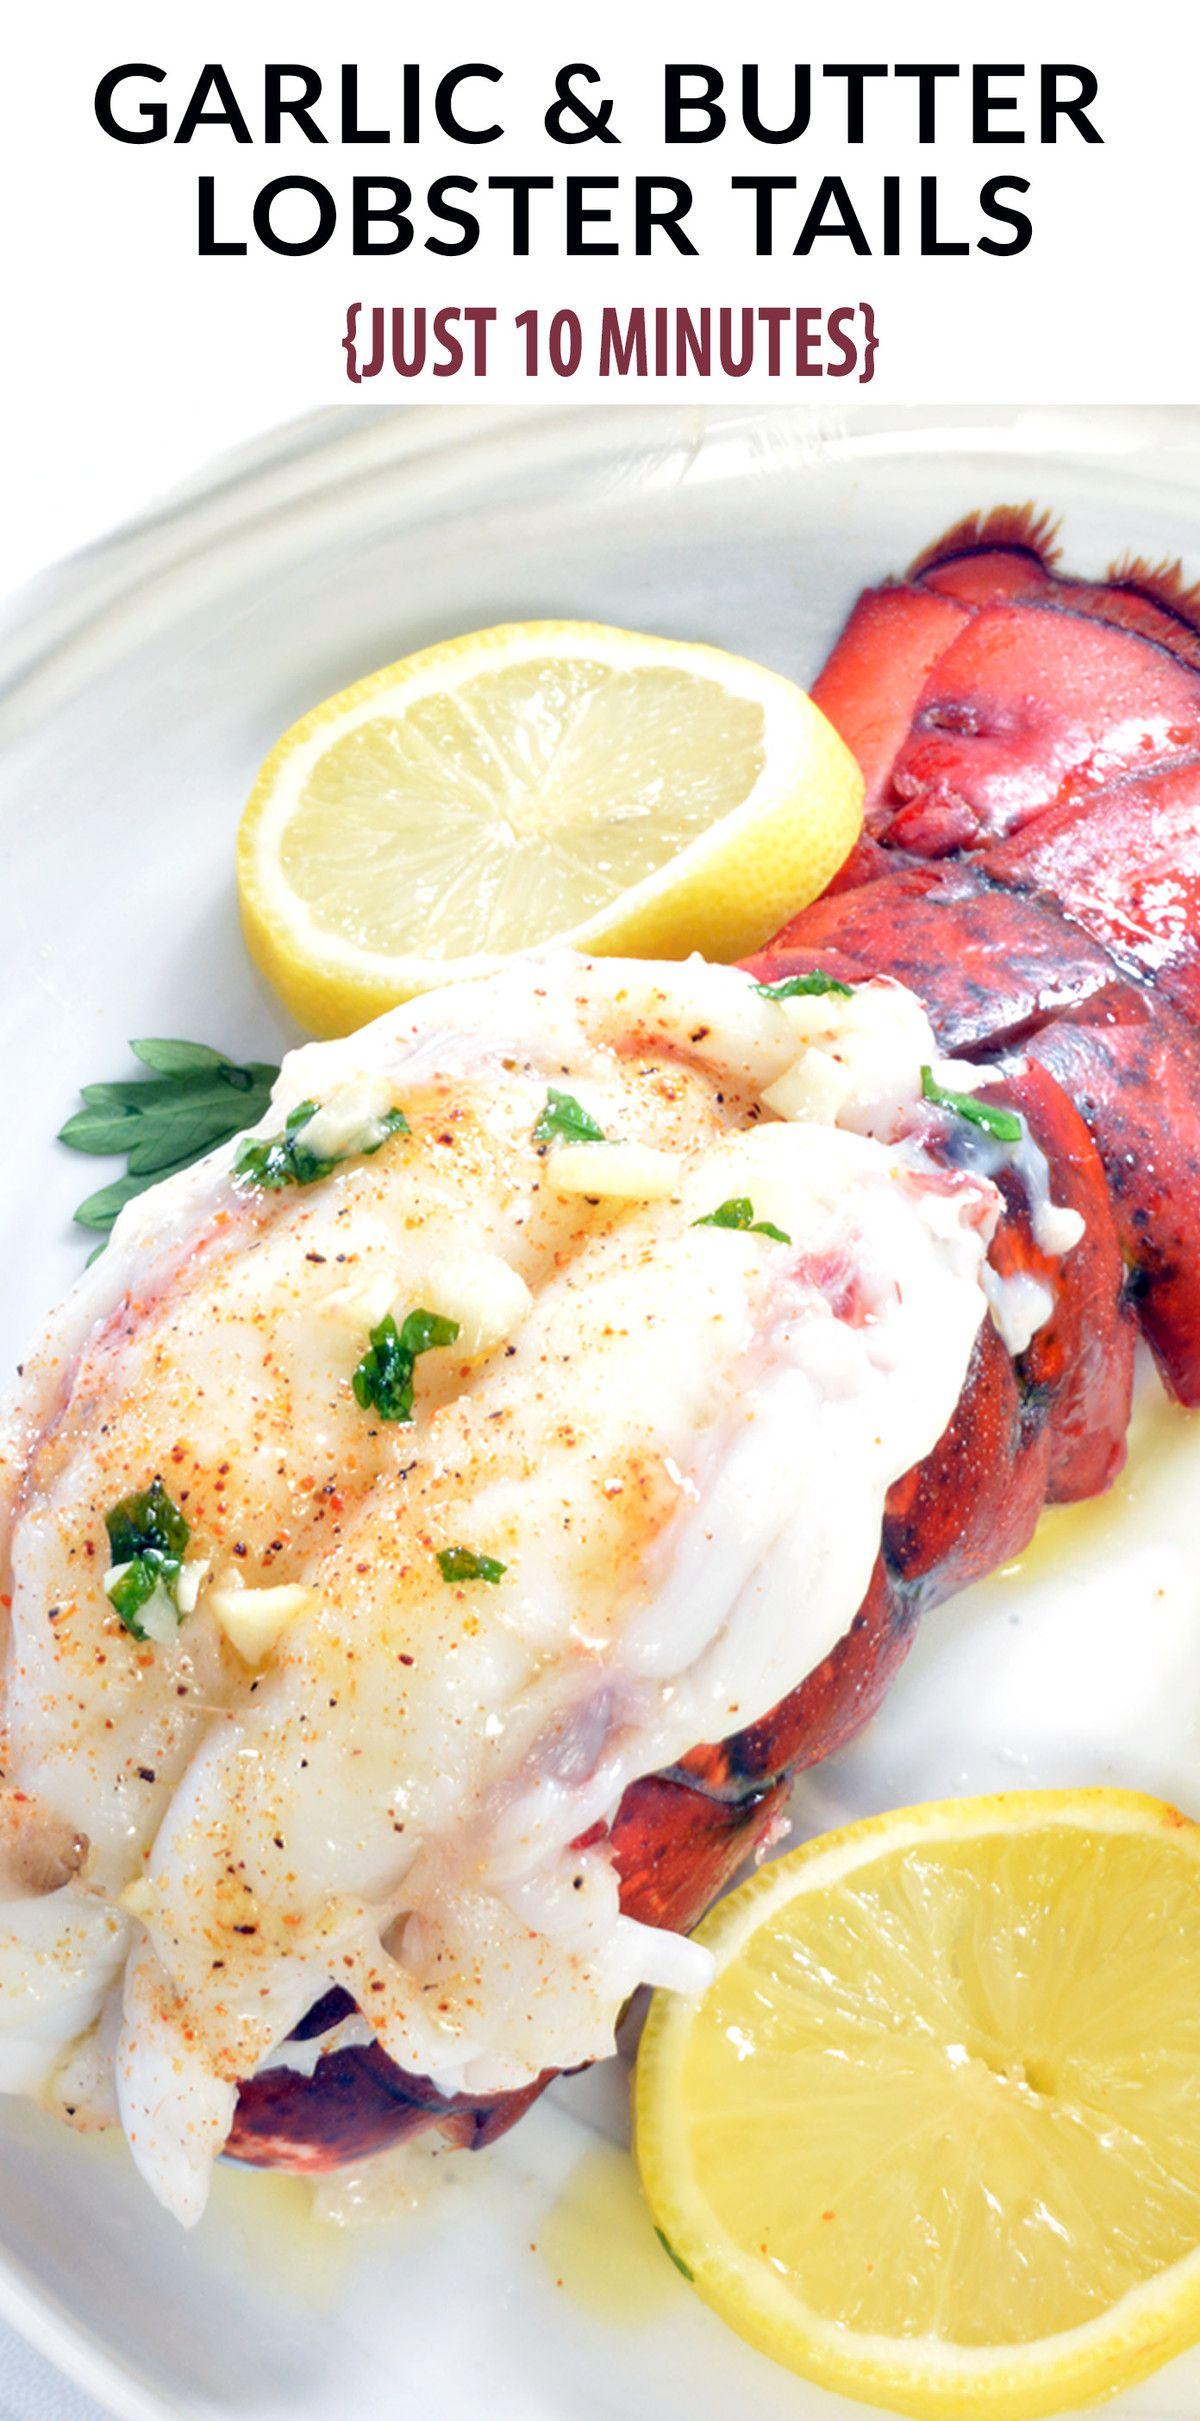 10 Minute Garlic Butter Baked Lobster Tail